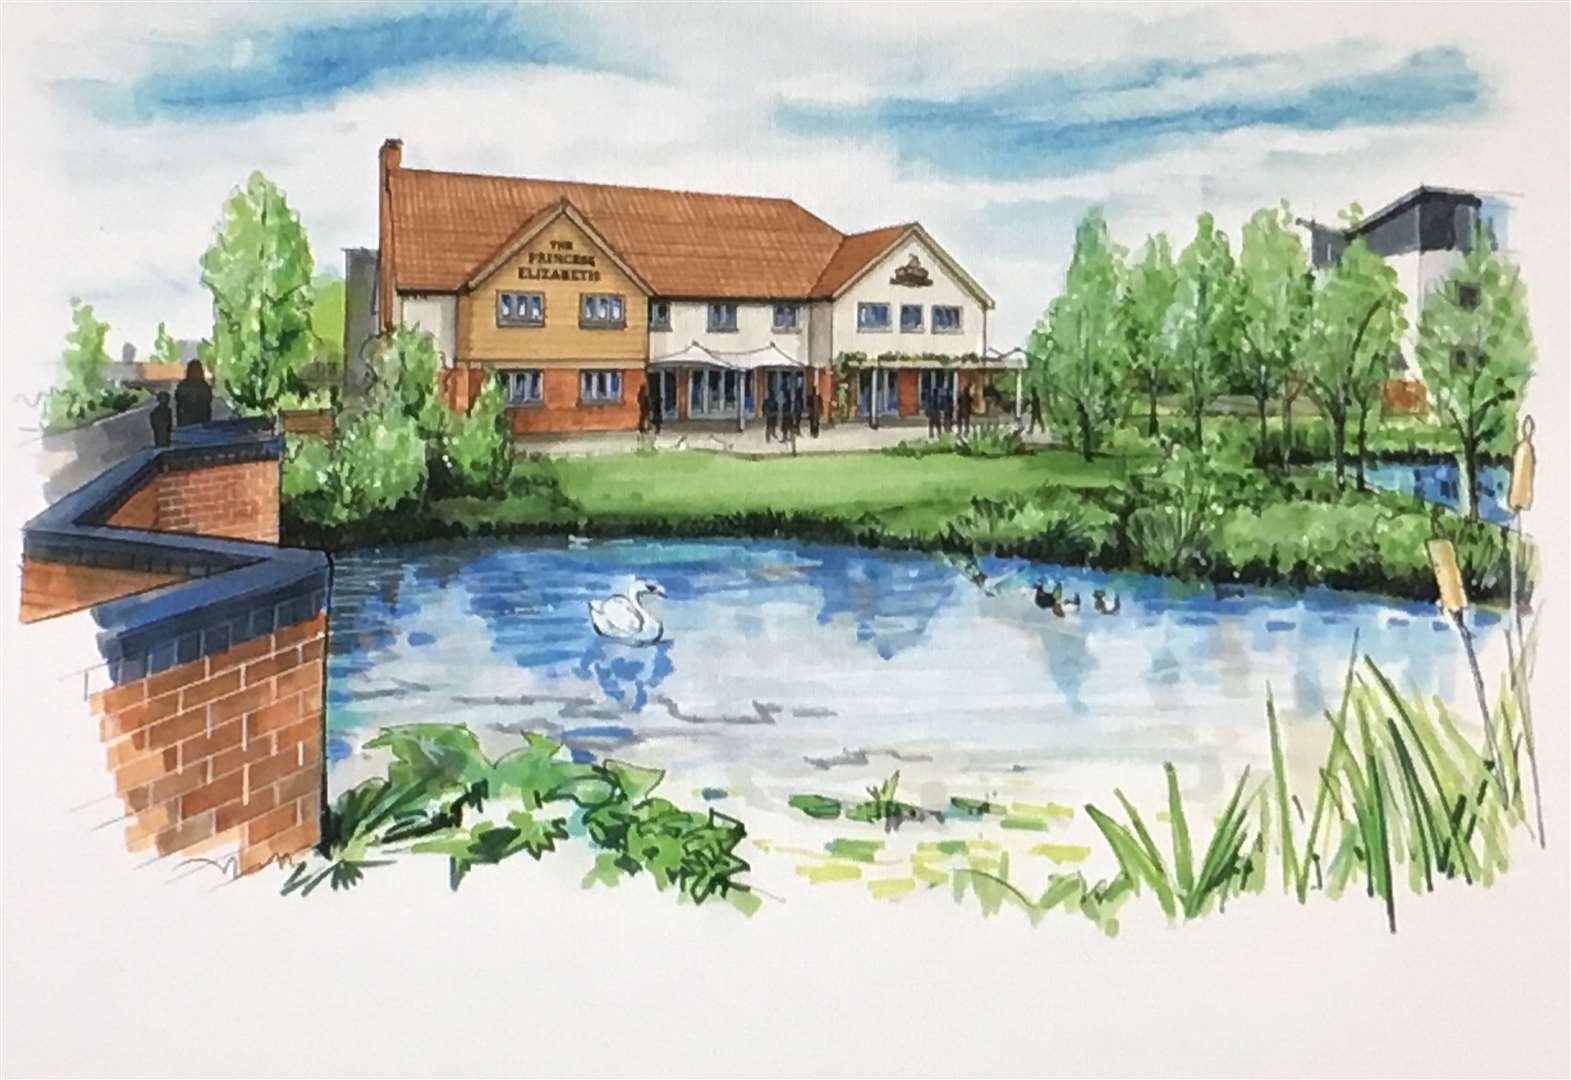 Work starts on new hotel and McMullen pub-restaurant in Cambourne